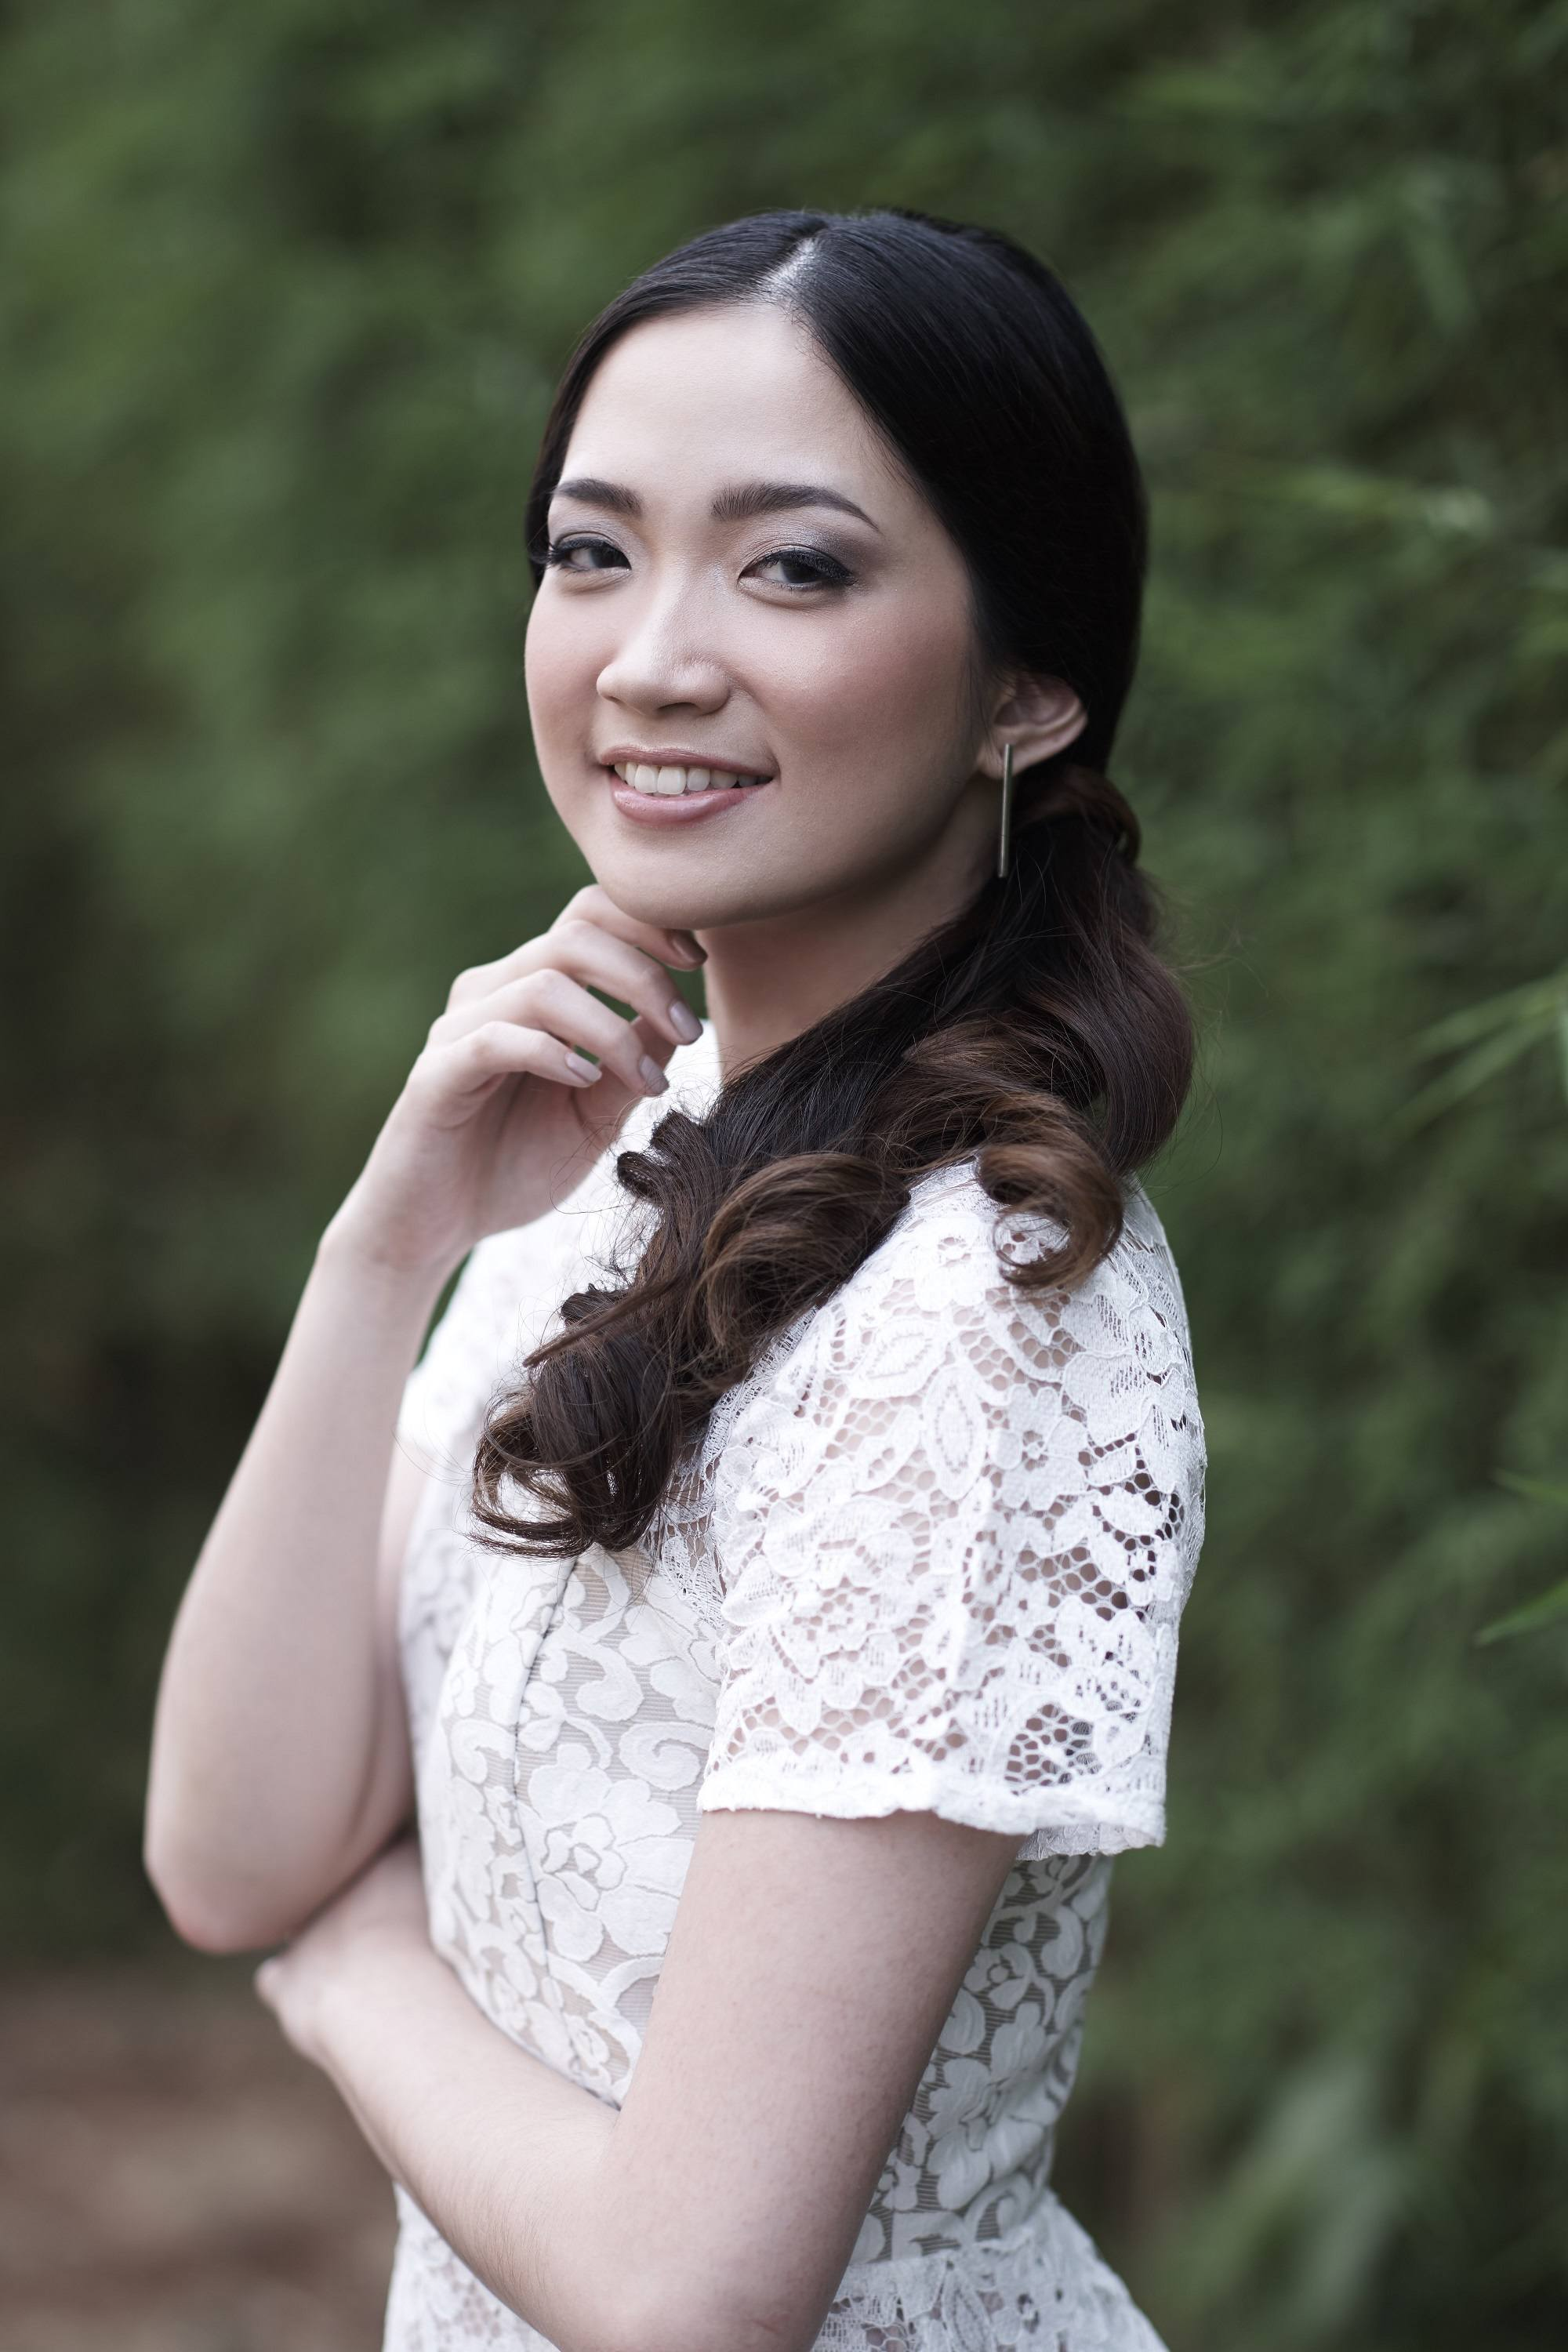 Curly side ponytail: Asian woman wearing a white dress with long black hair in curly side ponytail with leaves in the background